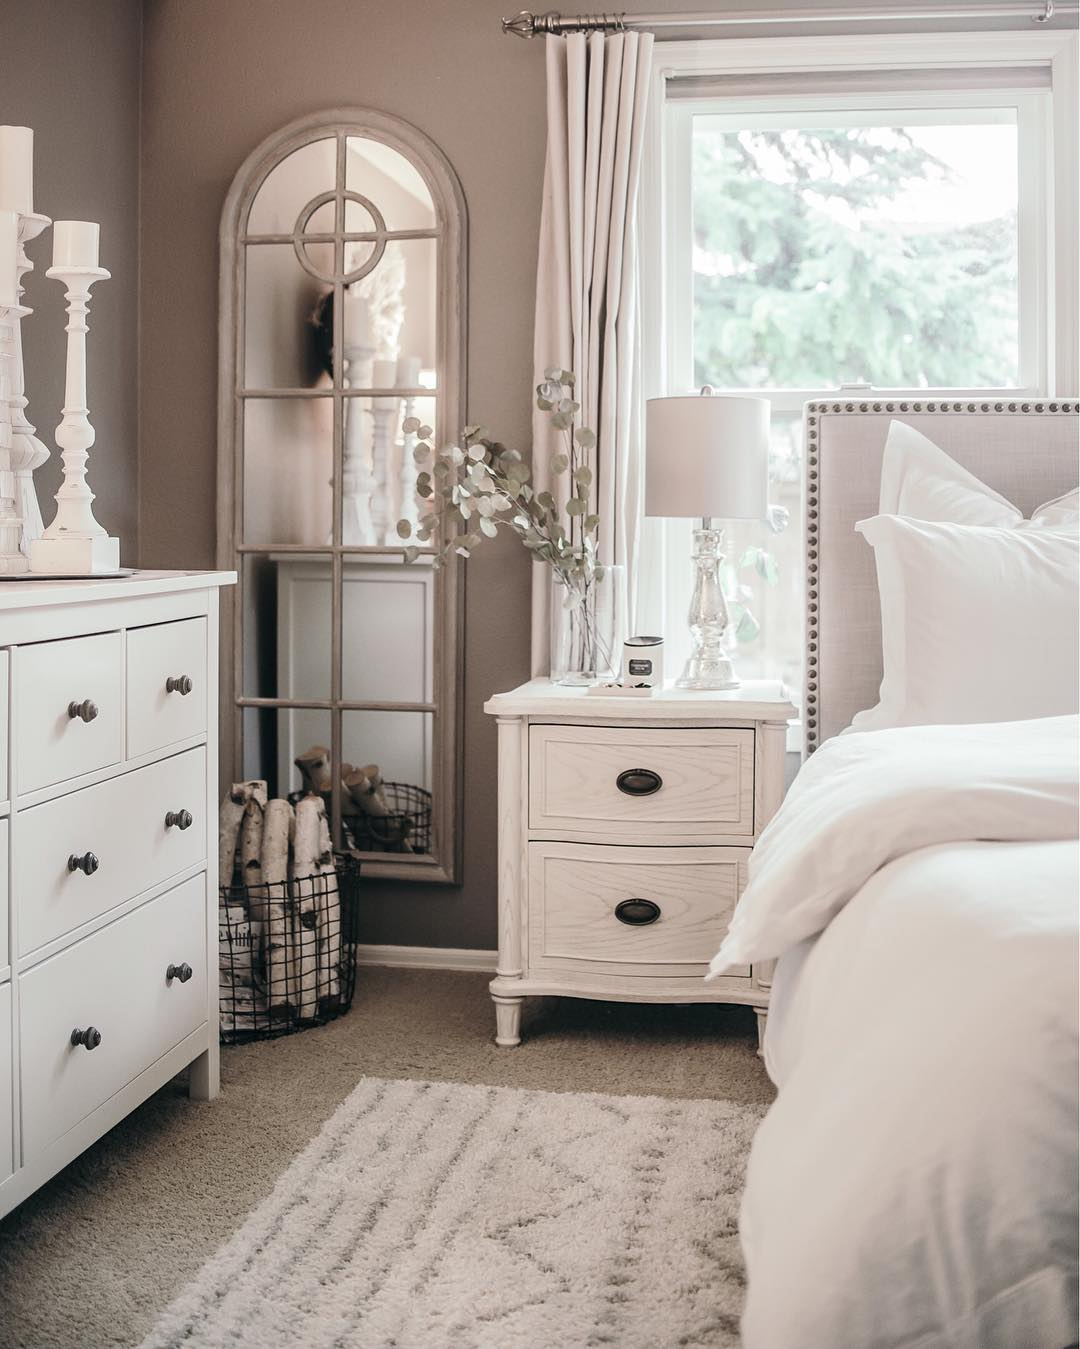 Bedroom Decorations Pinterest Houses Of Instagram A Bedroom In Calm Tones Of White And